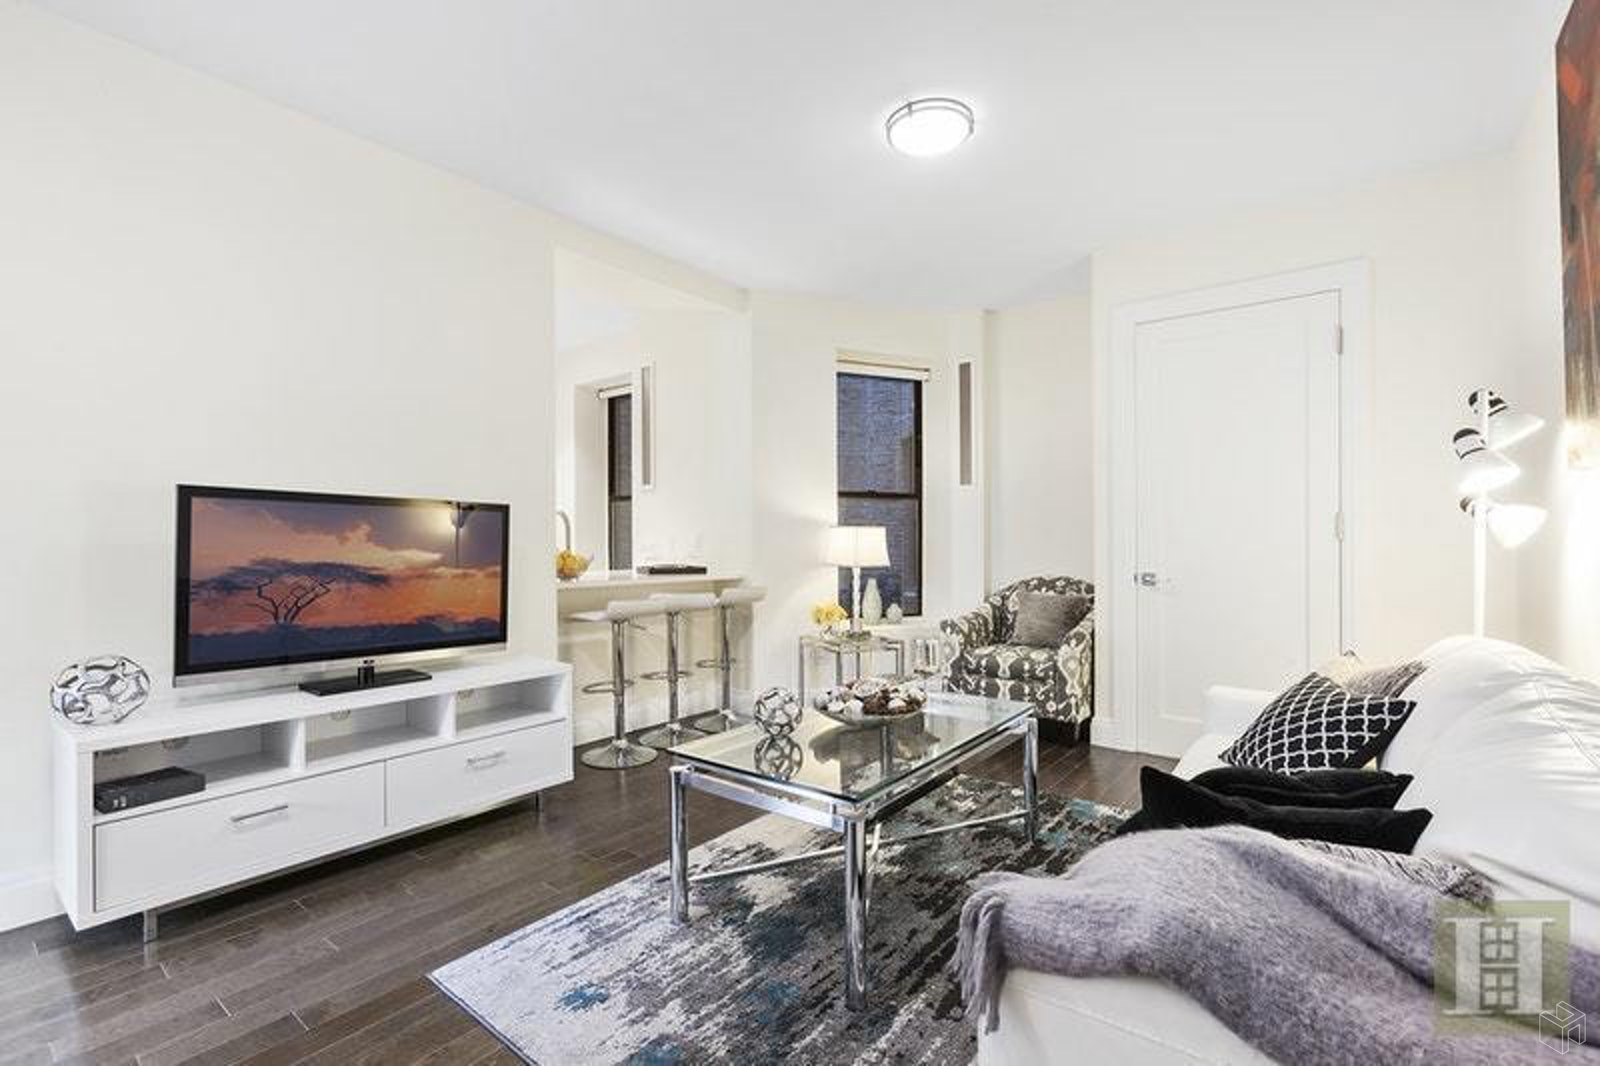 98 Morningside Avenue 26, Upper Manhattan, NYC, 10027, Price Not Disclosed, Rented Property, Halstead Real Estate, Photo 6